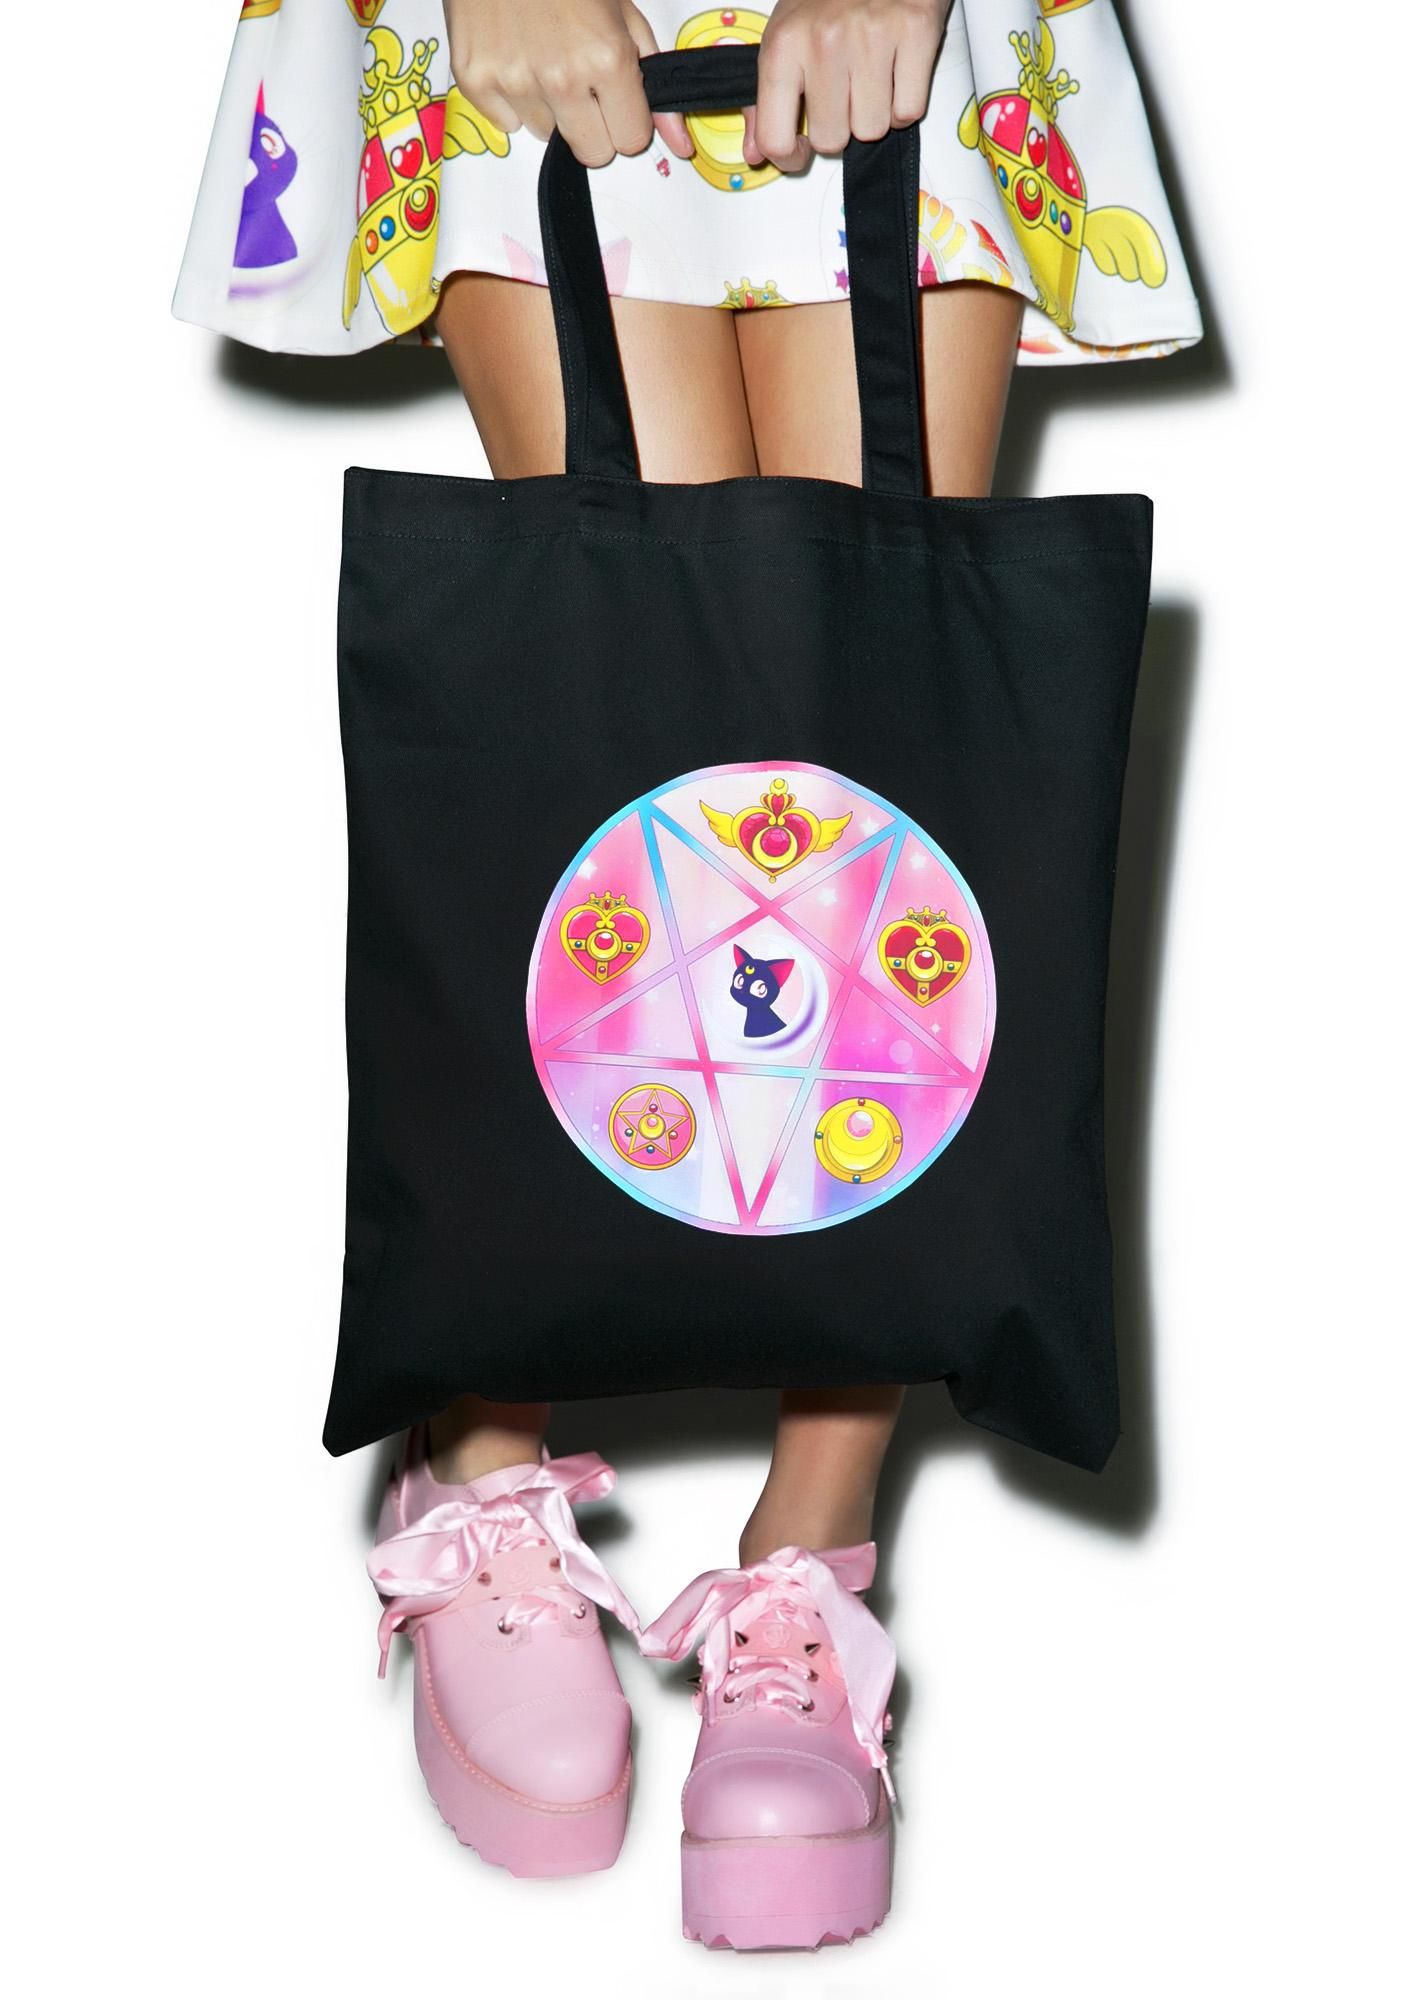 Pentagram Sailor Tote Bag